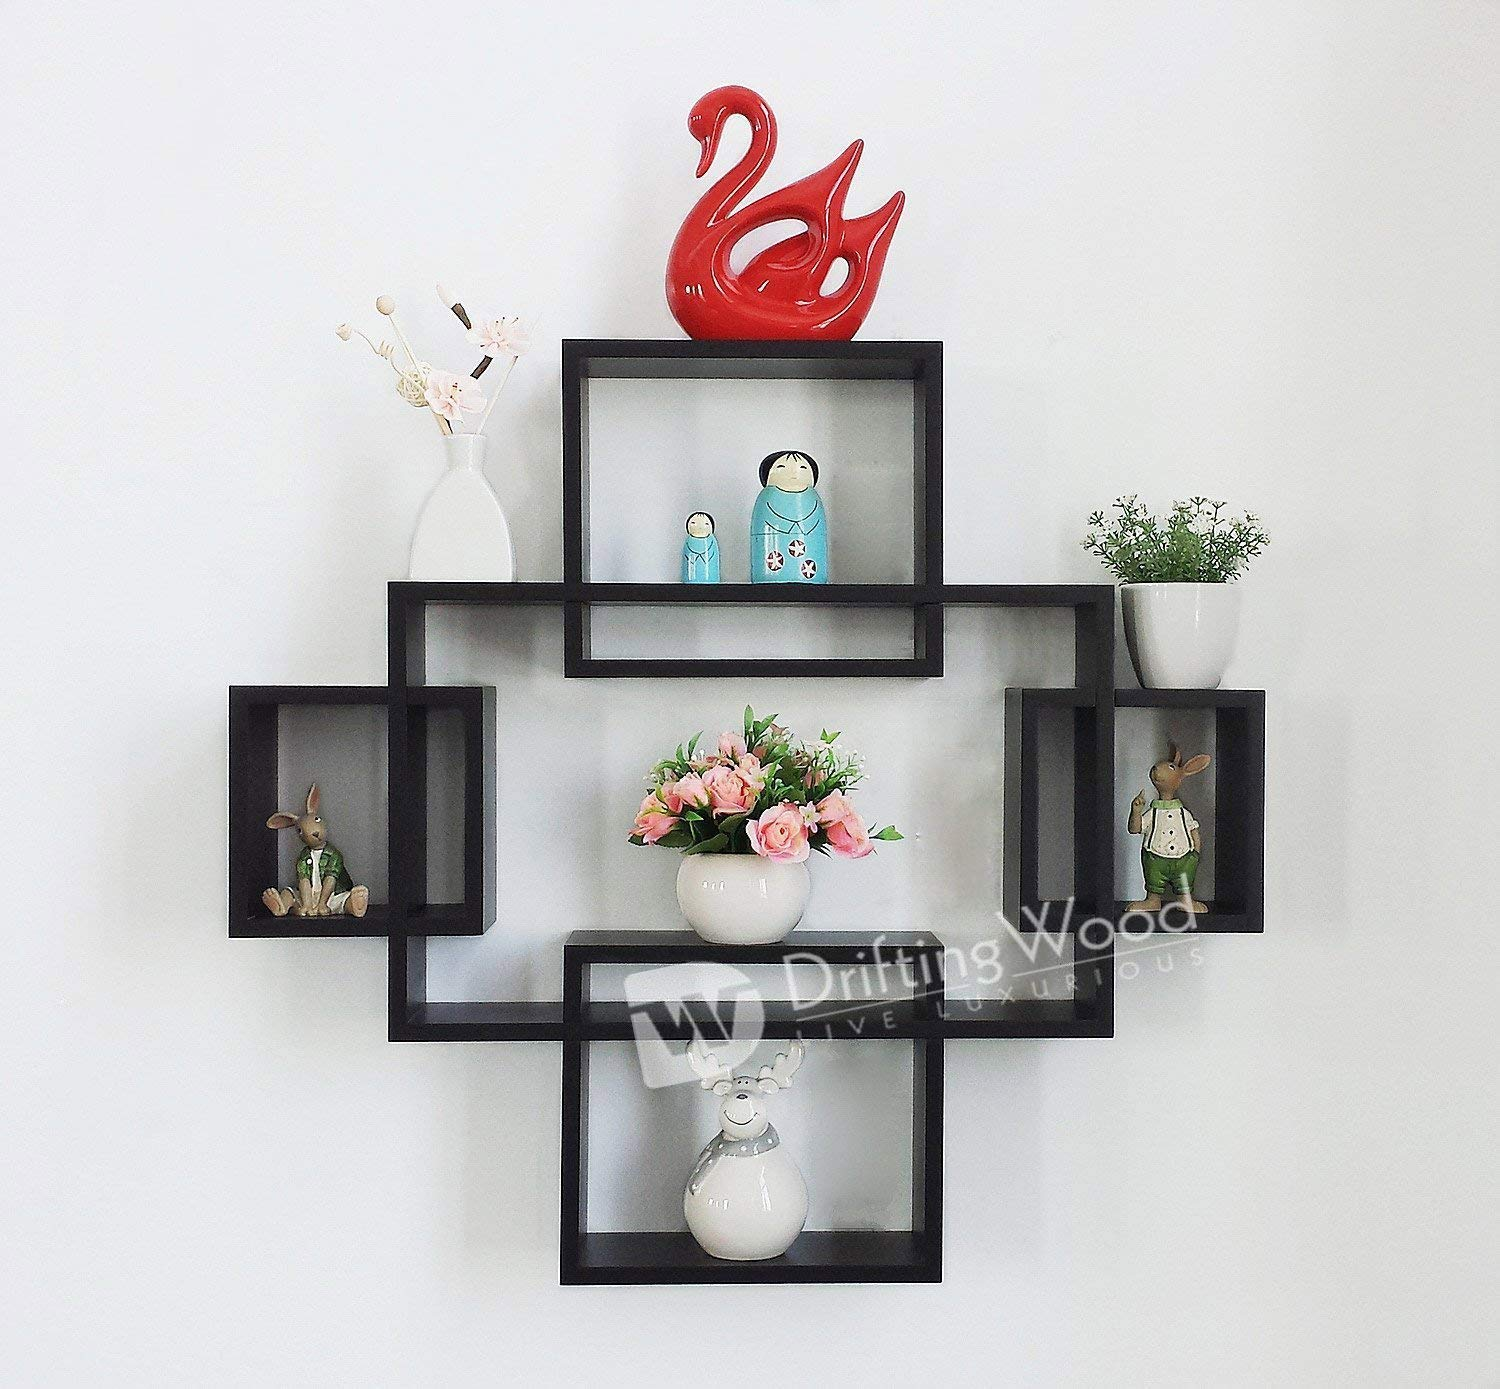 Driftingwood Wooden Intersecting Wall Shelves Shelf For Living Room Set Of 5 Black Amazon In Home Kitchen